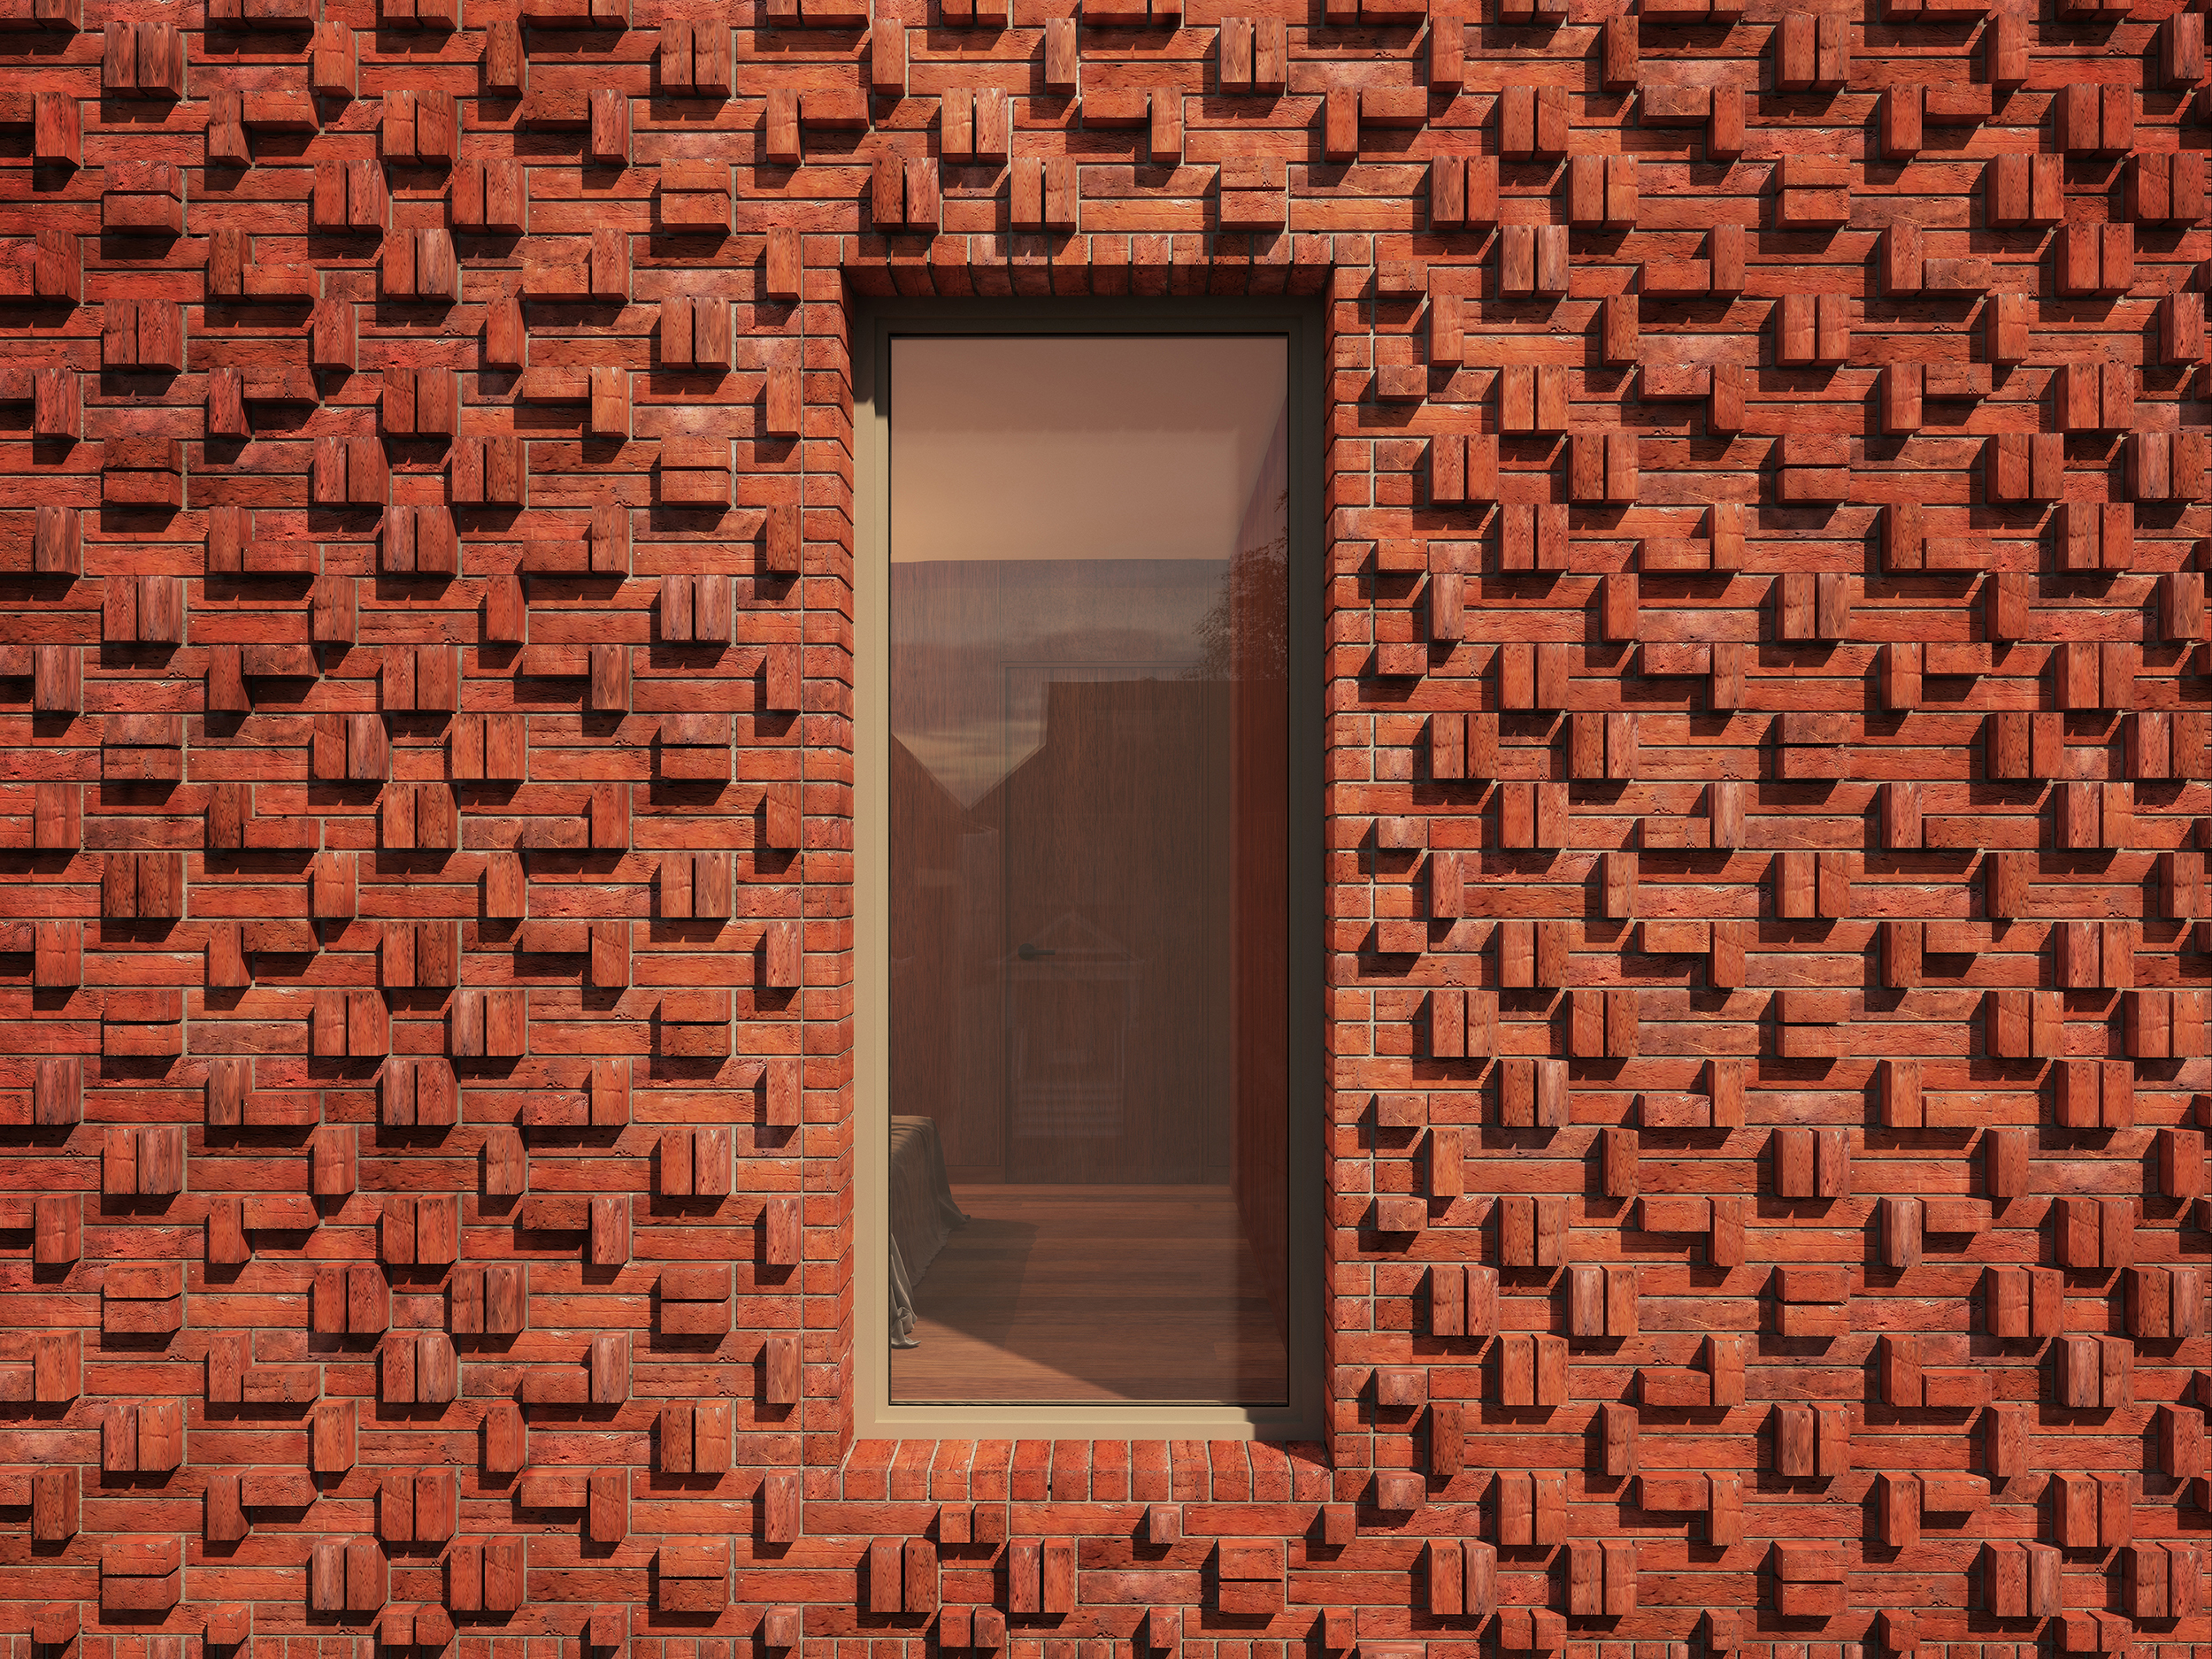 Exterior view with close up of brick pattern